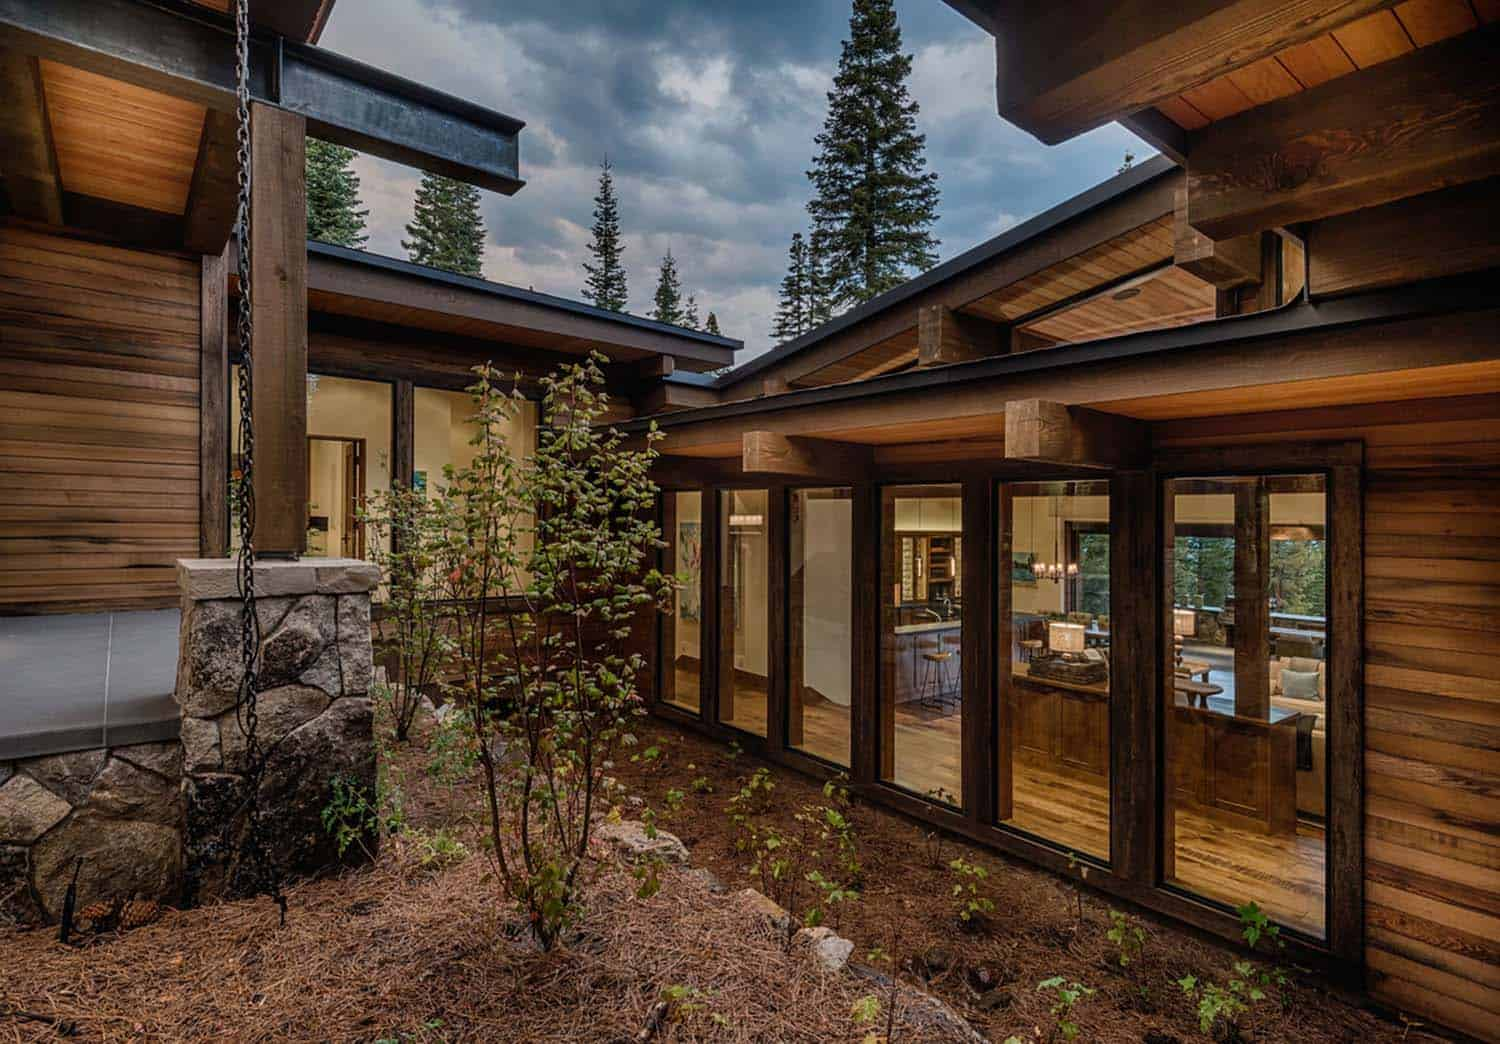 transitional-style-mountain-home-exterior